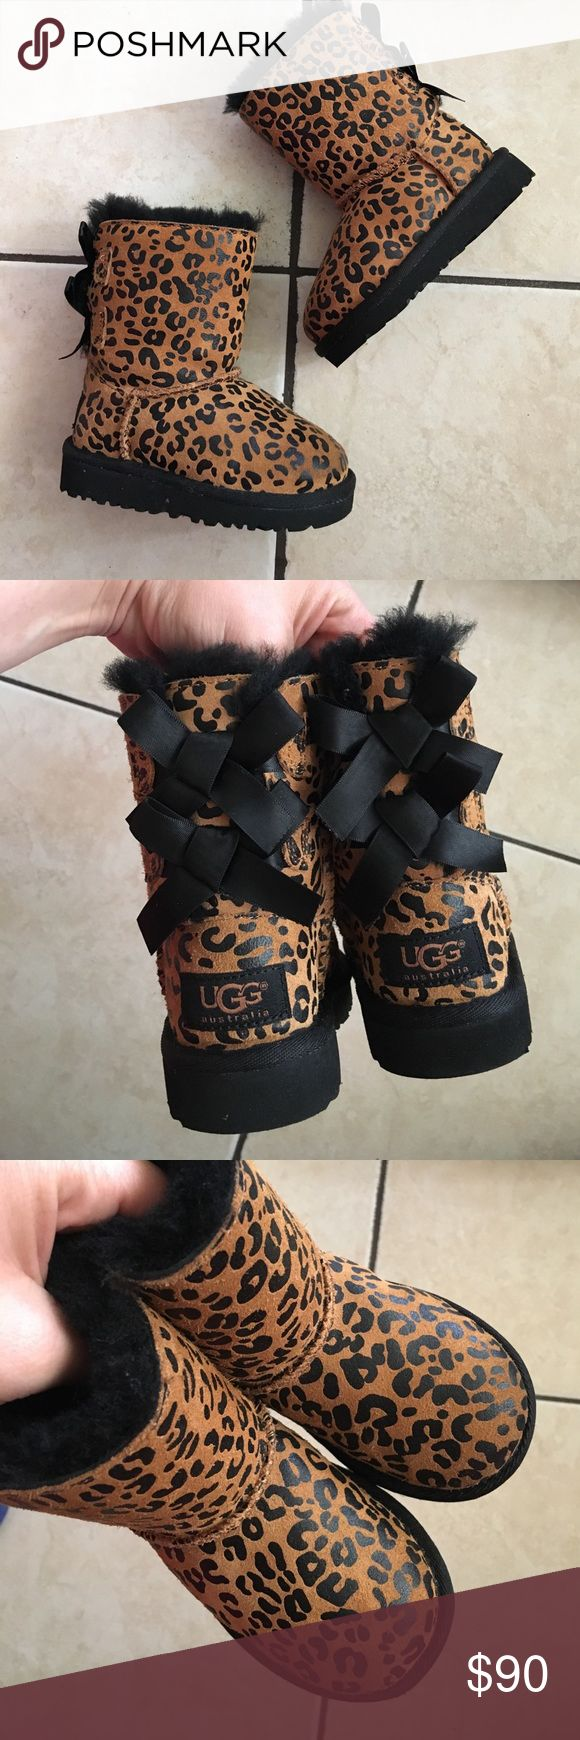 Uggs bailey bows leopard size 6c Worn once no box UGG Shoes Boots